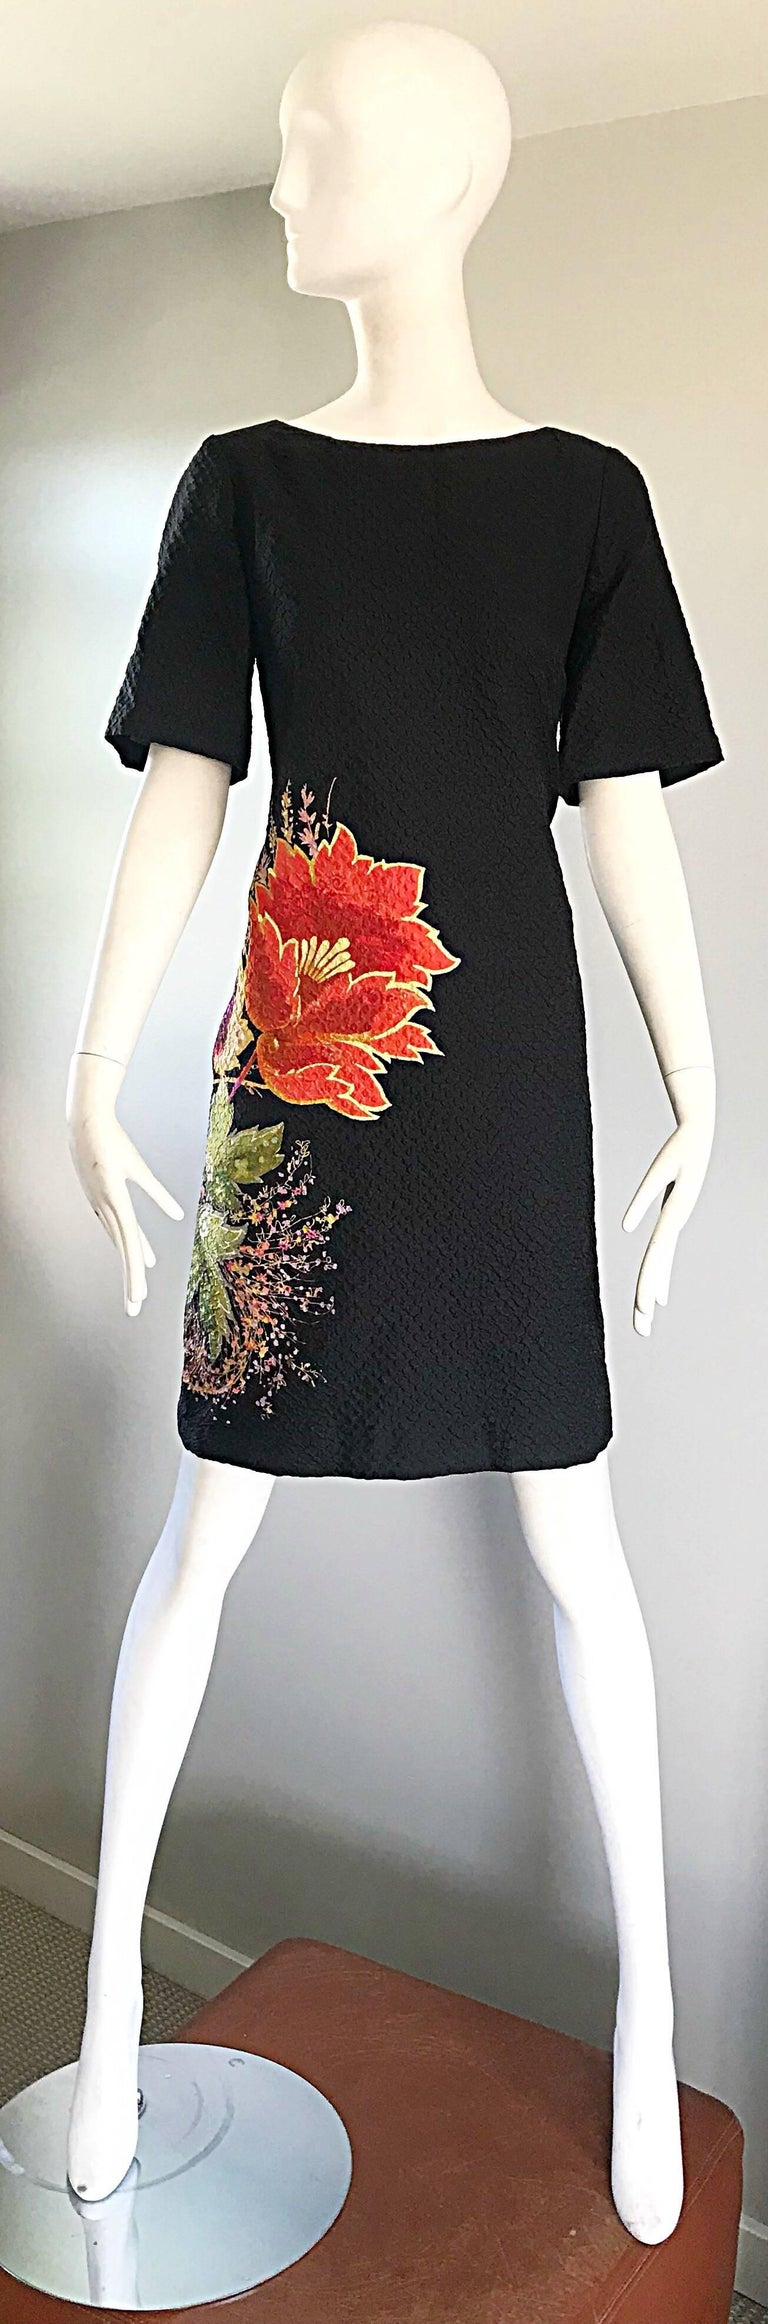 Chic 1990s ETRO short bell sleeve textured silk shift sac dress with POCKETS! Features a jet black background, with a colorful flower print in red, pink, yellow, purple and green on the side front and back. Hidden zipper up the back with